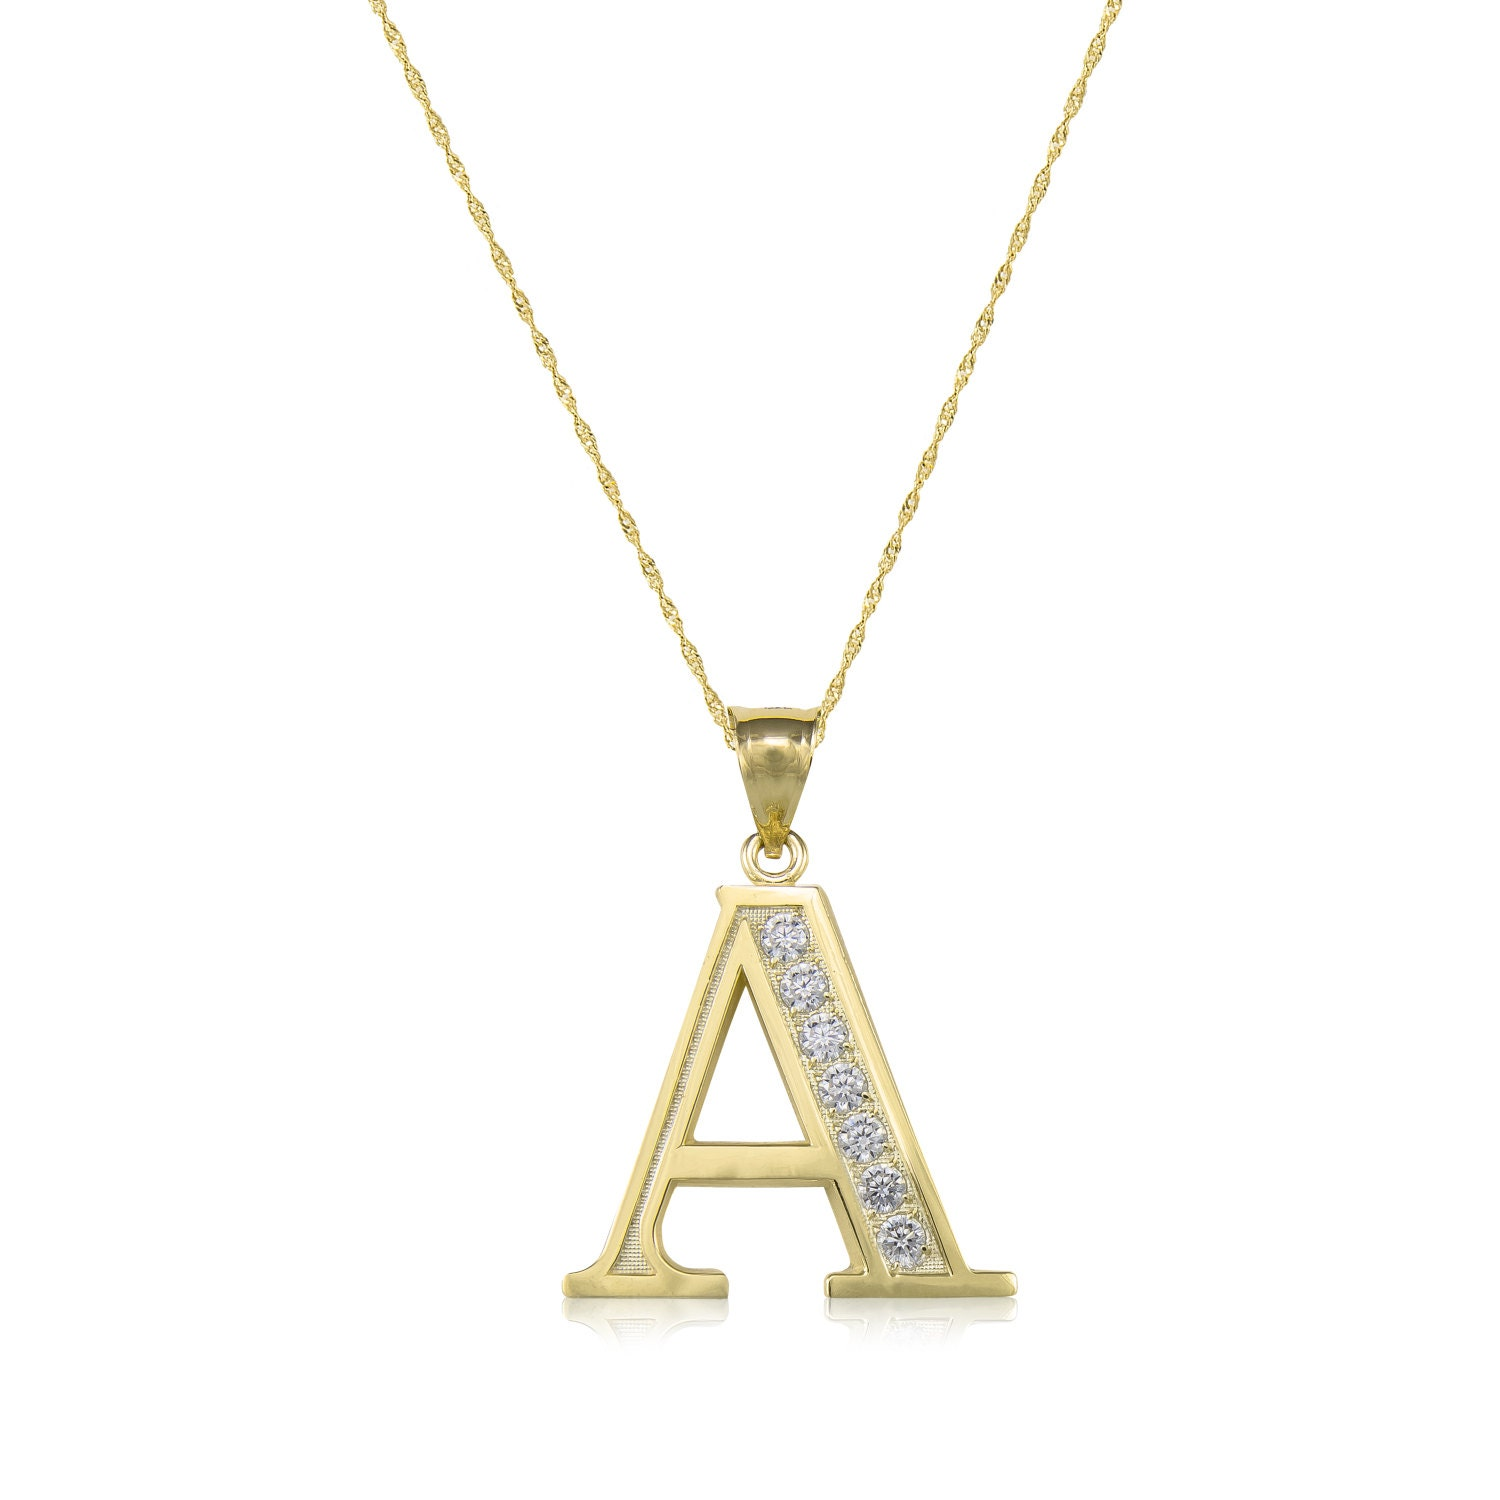 10k solid yellow gold cubic zirconia initial letter pendant 10k solid yellow gold cubic zirconia initial letter pendant singapore chain necklace set a z any alphabet charm mozeypictures Image collections